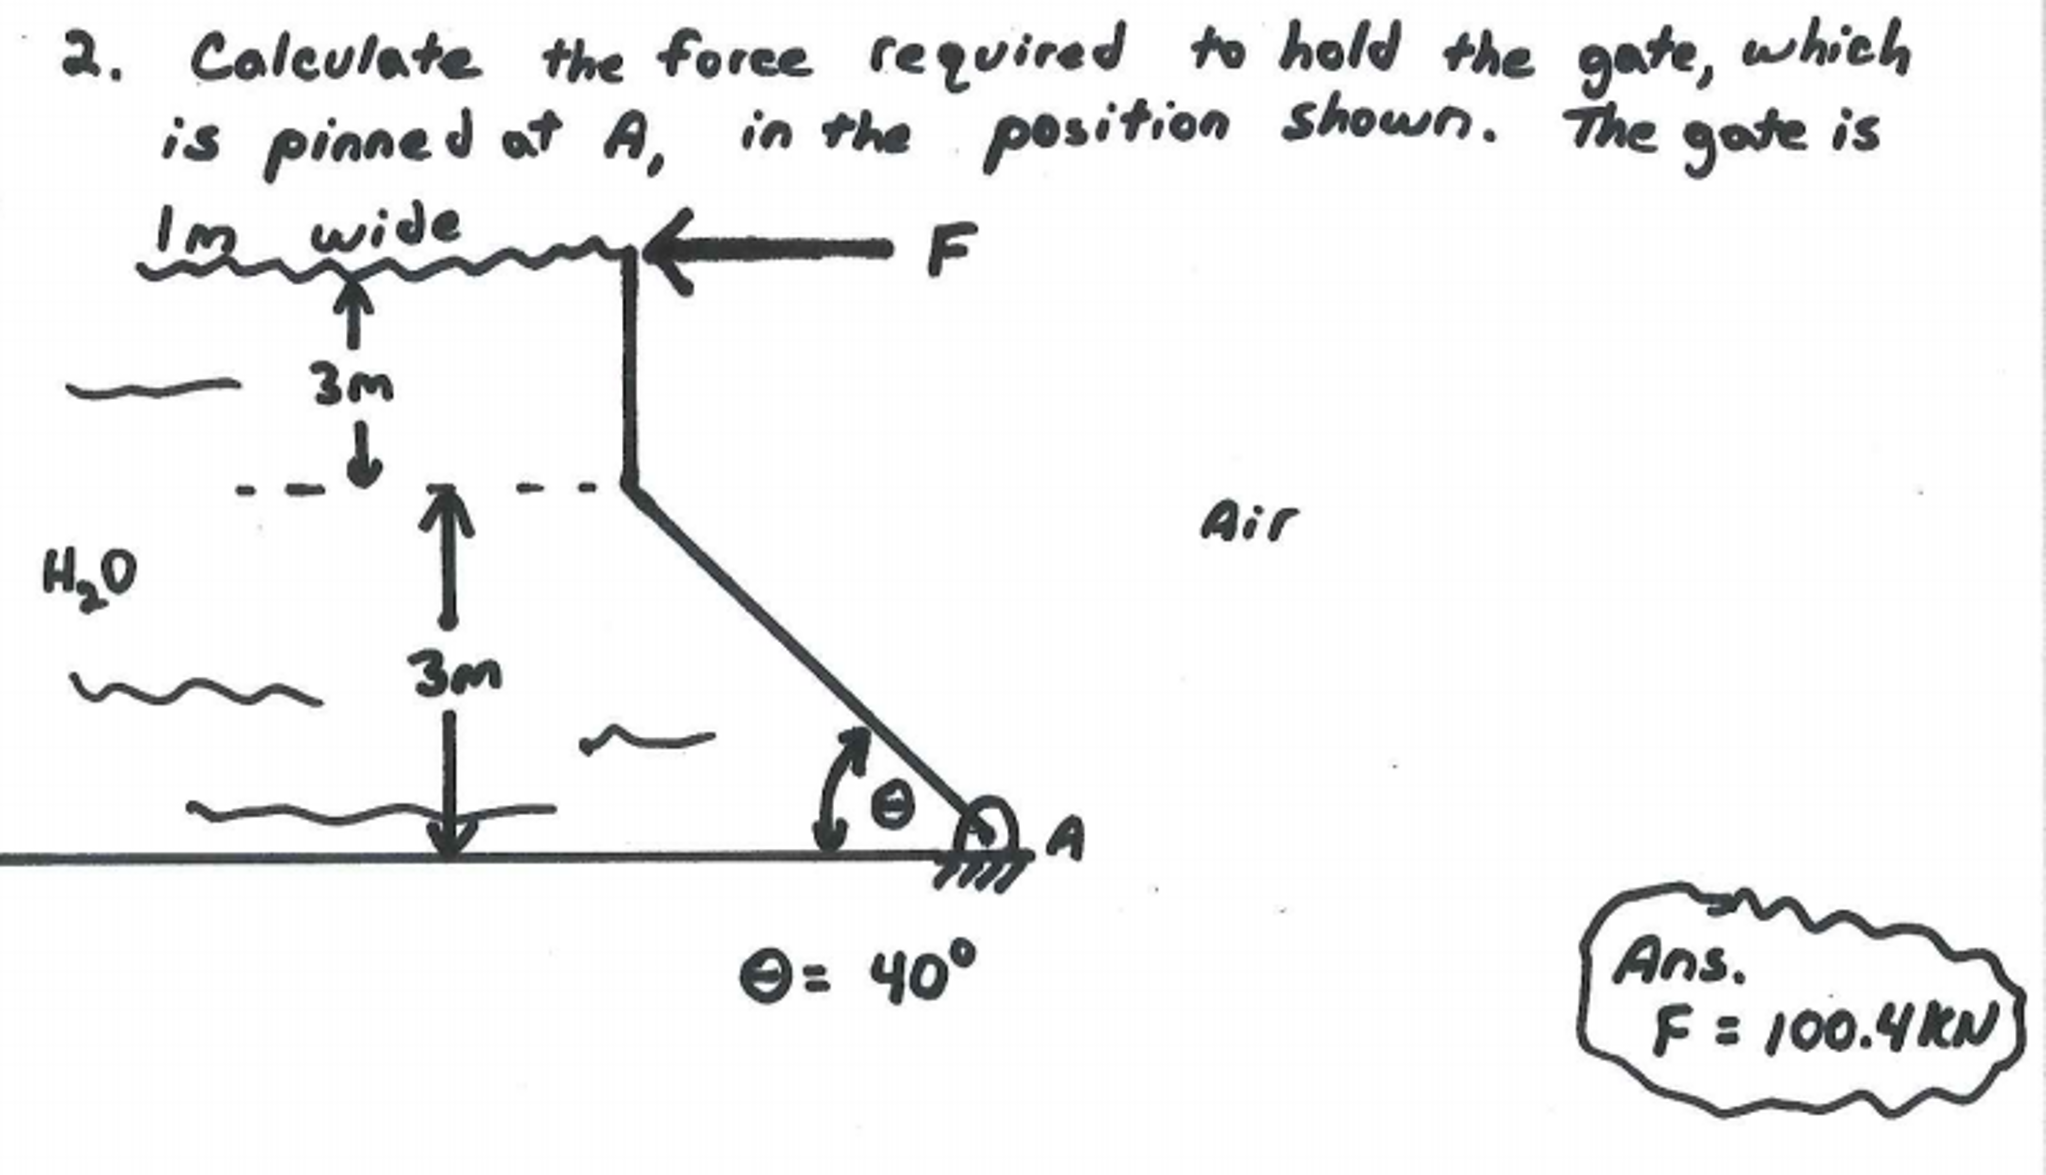 What force is required to hold a marble slab weighing 1 ton in water 34